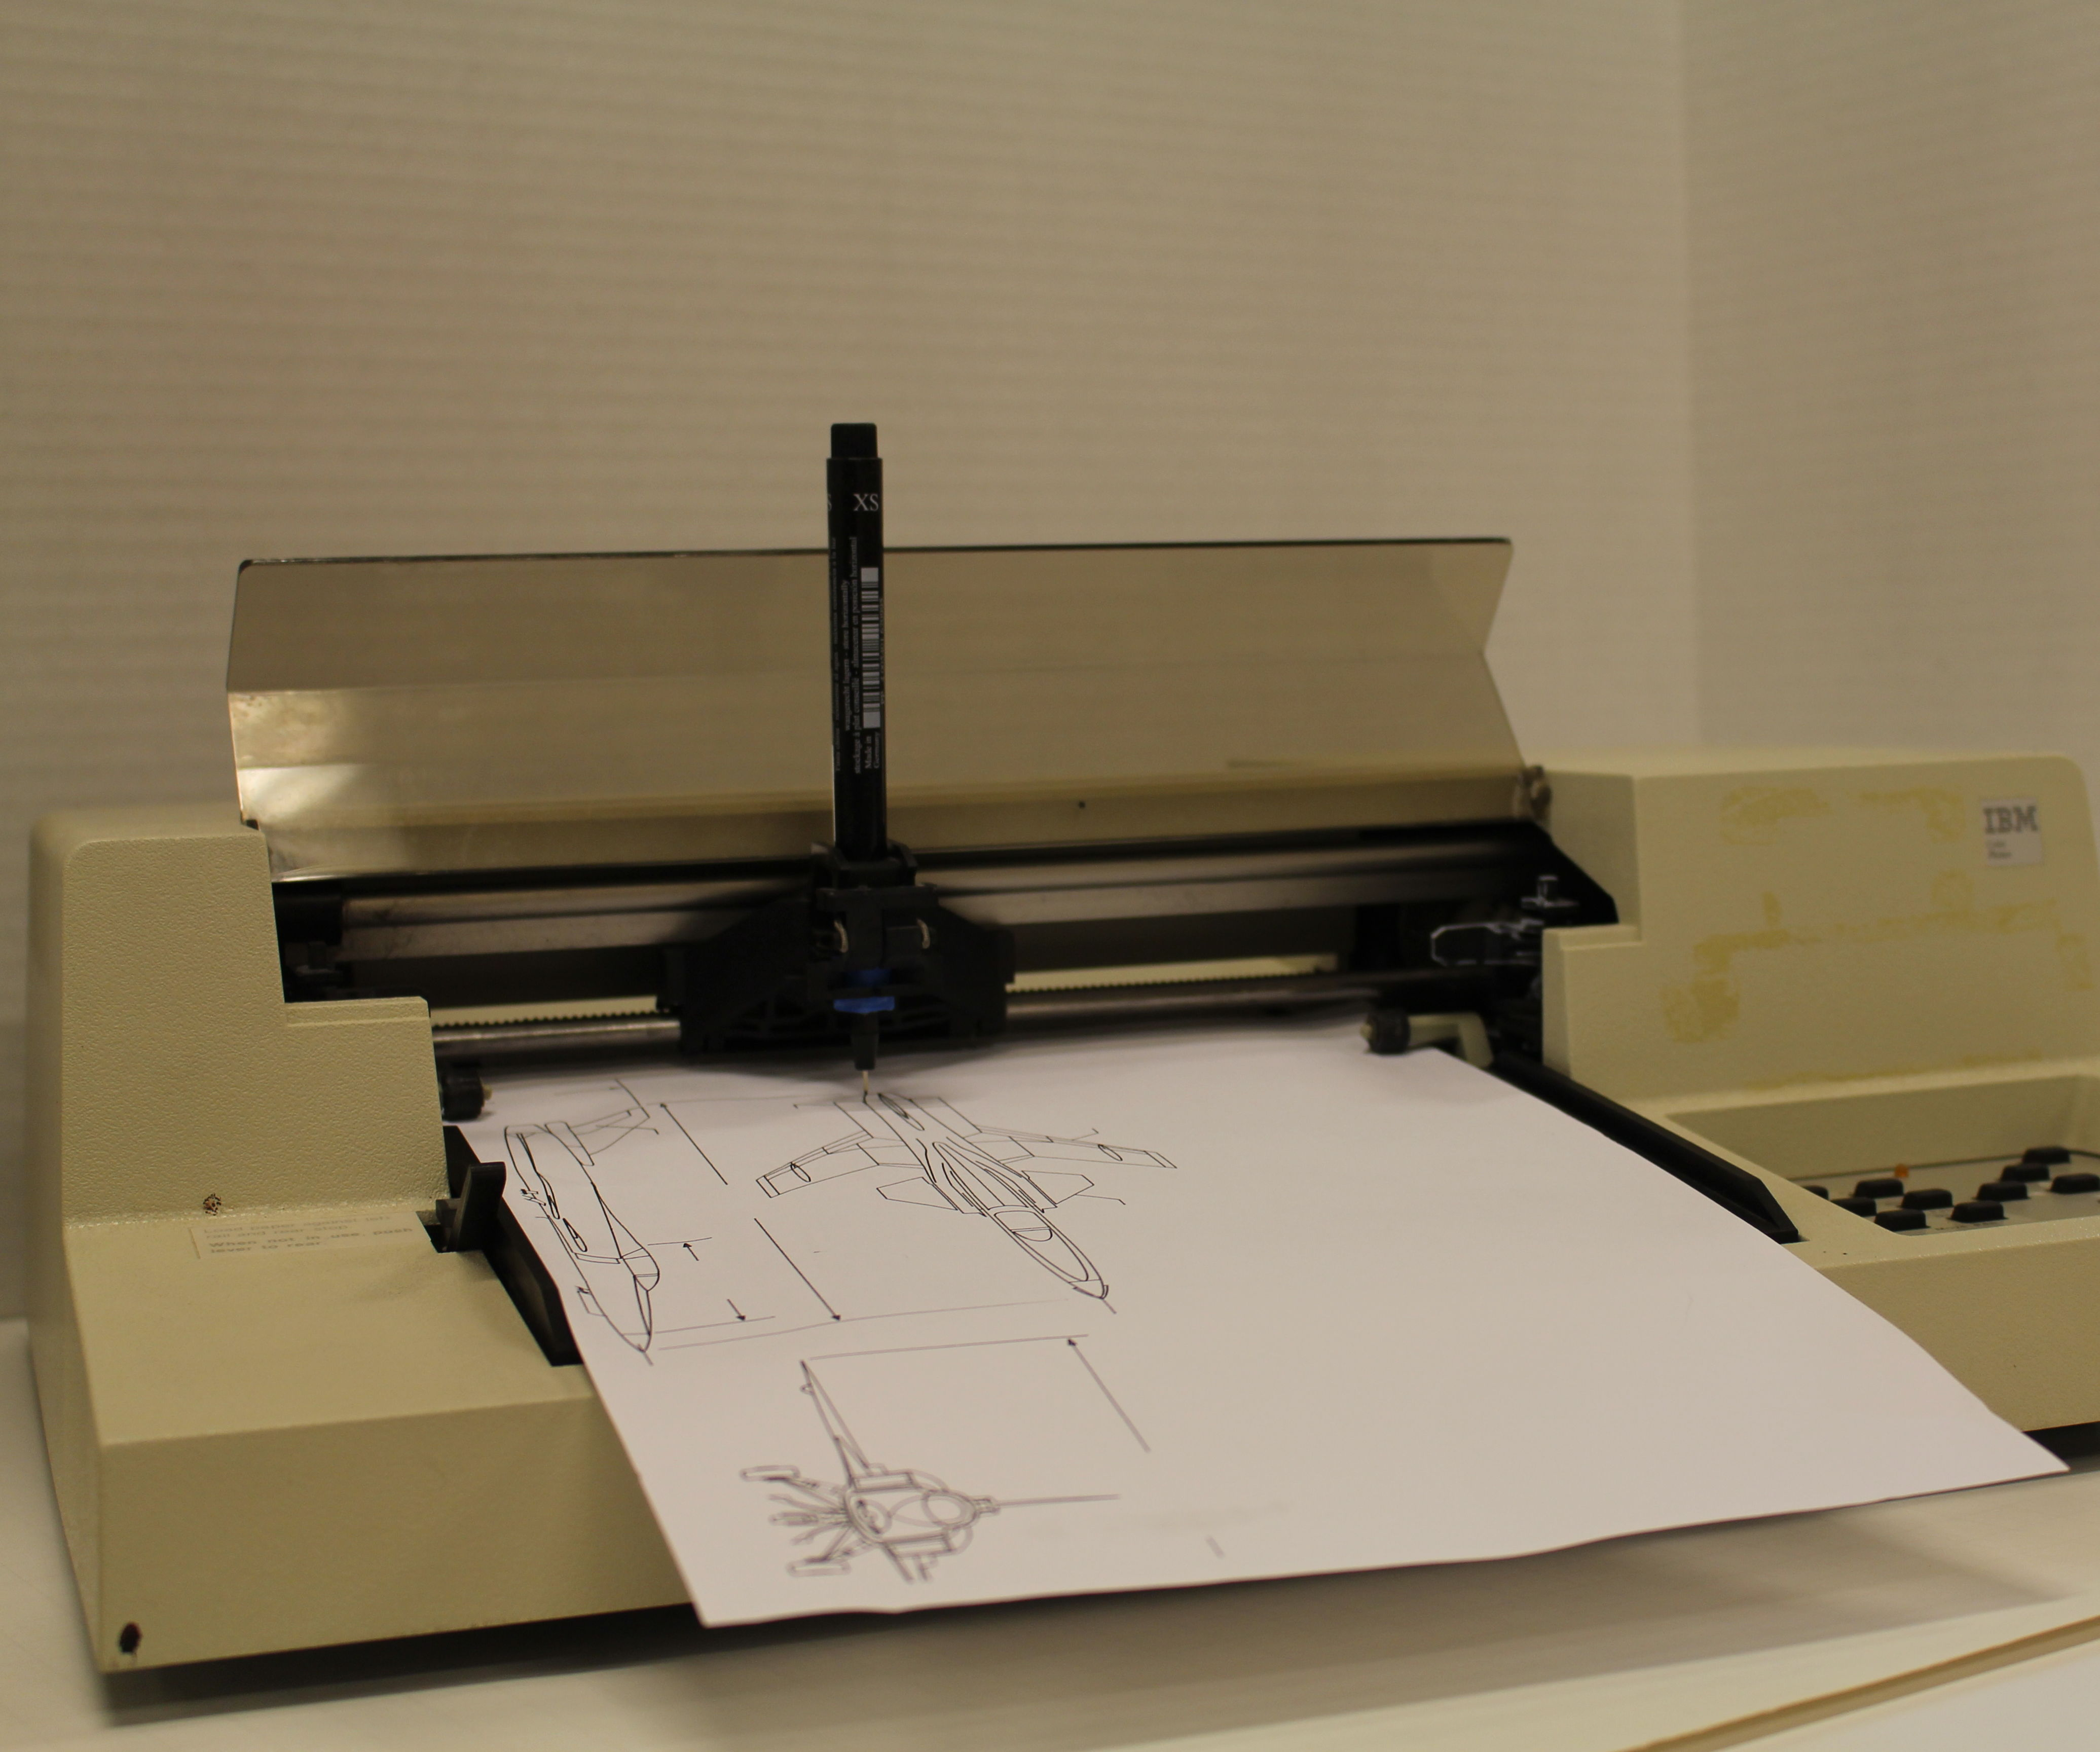 Drawing Pen to Plotter Pen - Make a $2 Adapter and Never Buy Plotter